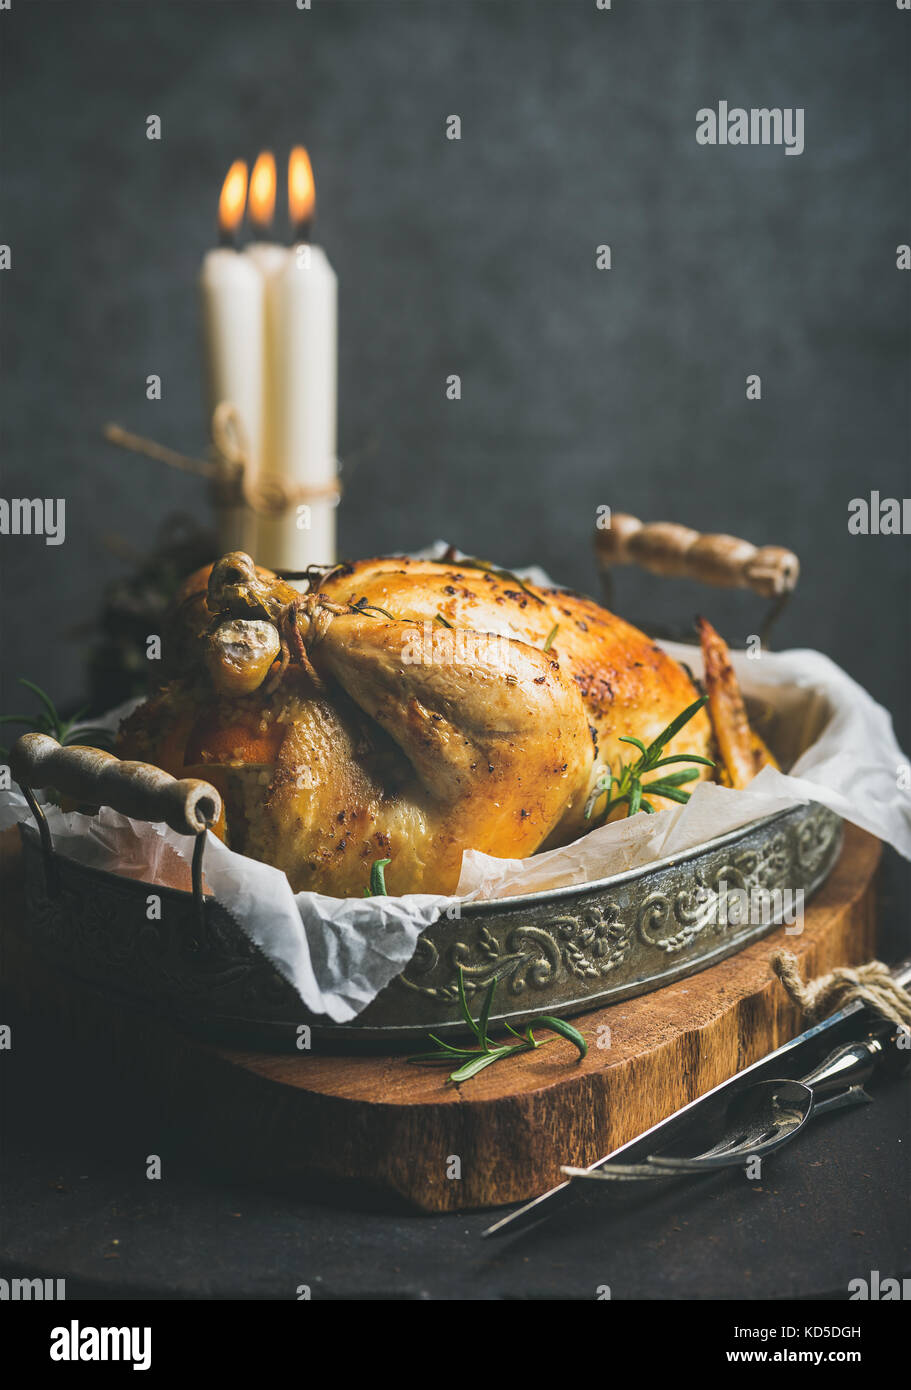 Christmas holiday table set with roasted whole chicken and candles - Stock Image